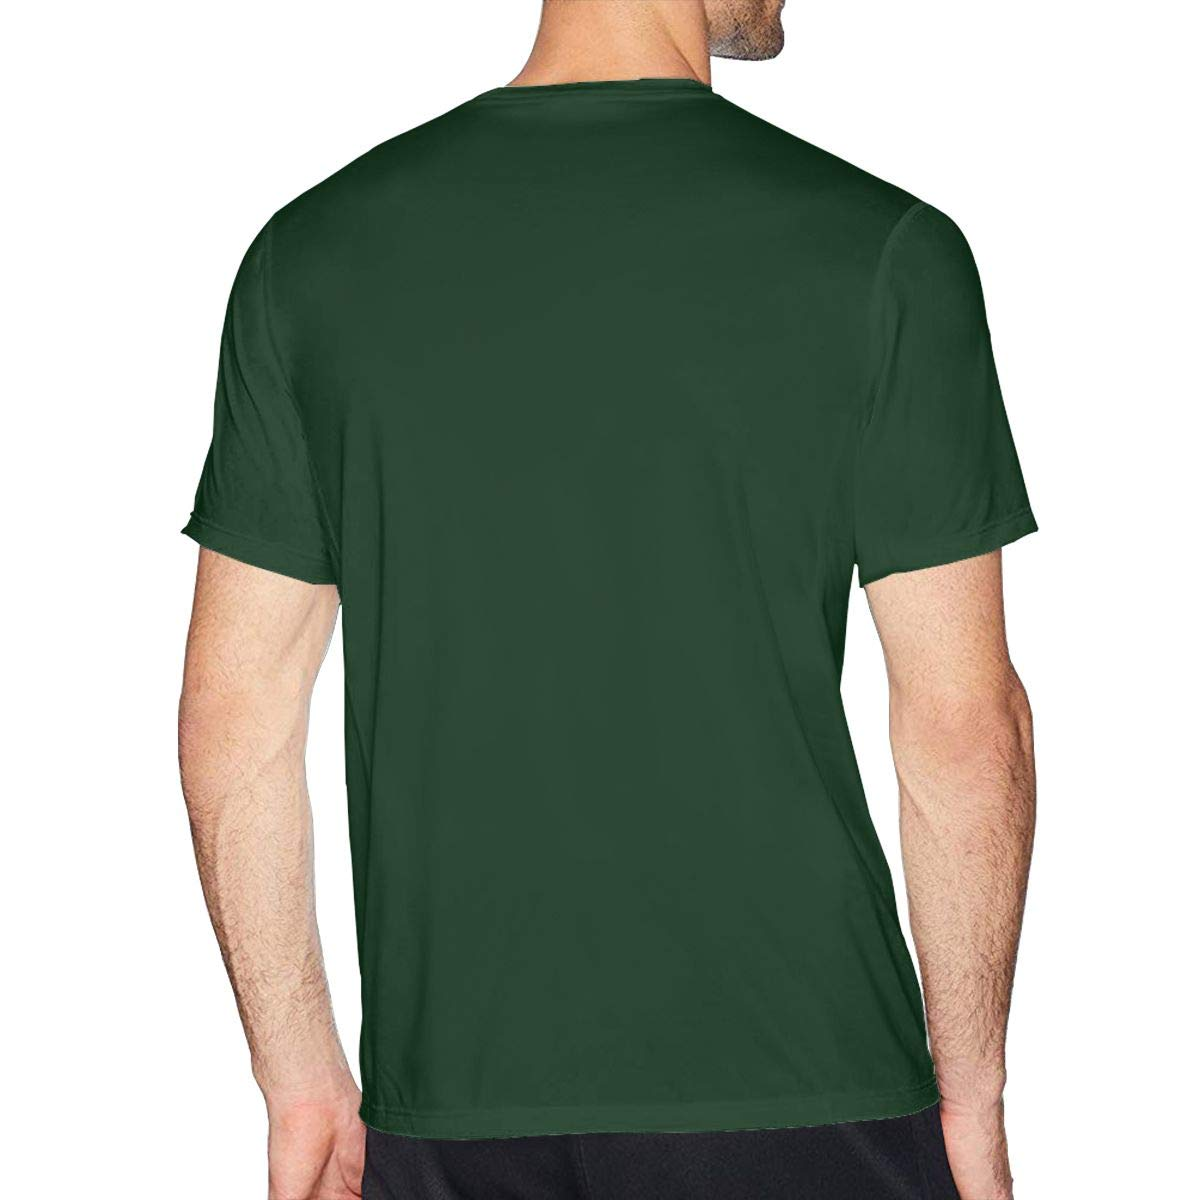 Printed 2 DENETRI Mens T-Shirt Casual Short Sleeve Tee Either Like Bacon Or Youre Wrong Basic Round Neck White T Shirts